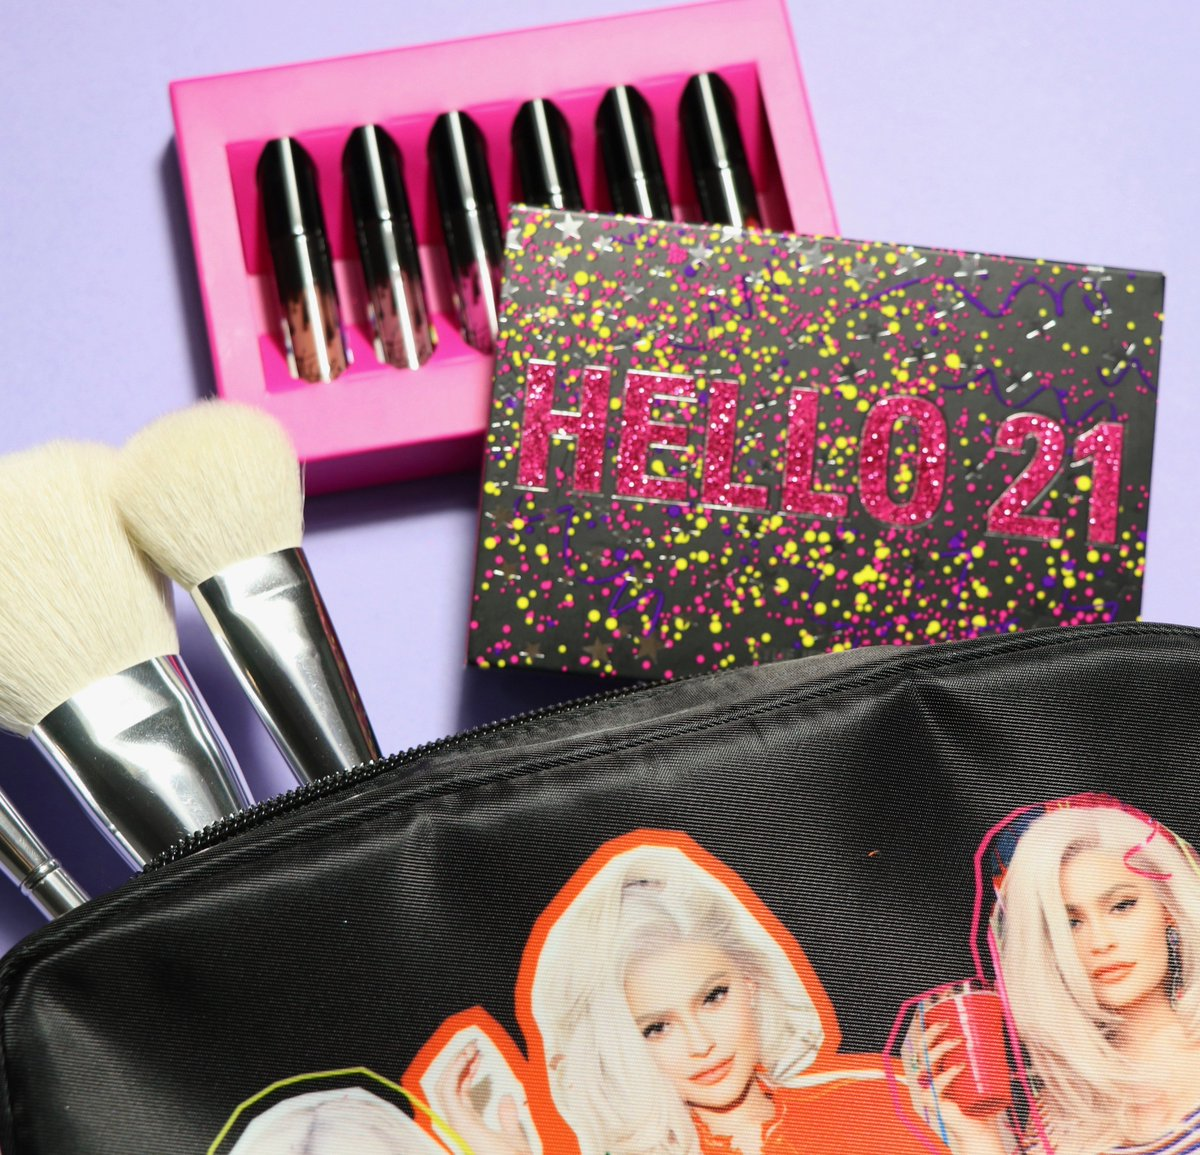 today you get a FREE makeup bag when you spend $100 or more! https://t.co/bDaioh0mLn @kyliecosmetics https://t.co/aAU7ONQRQo